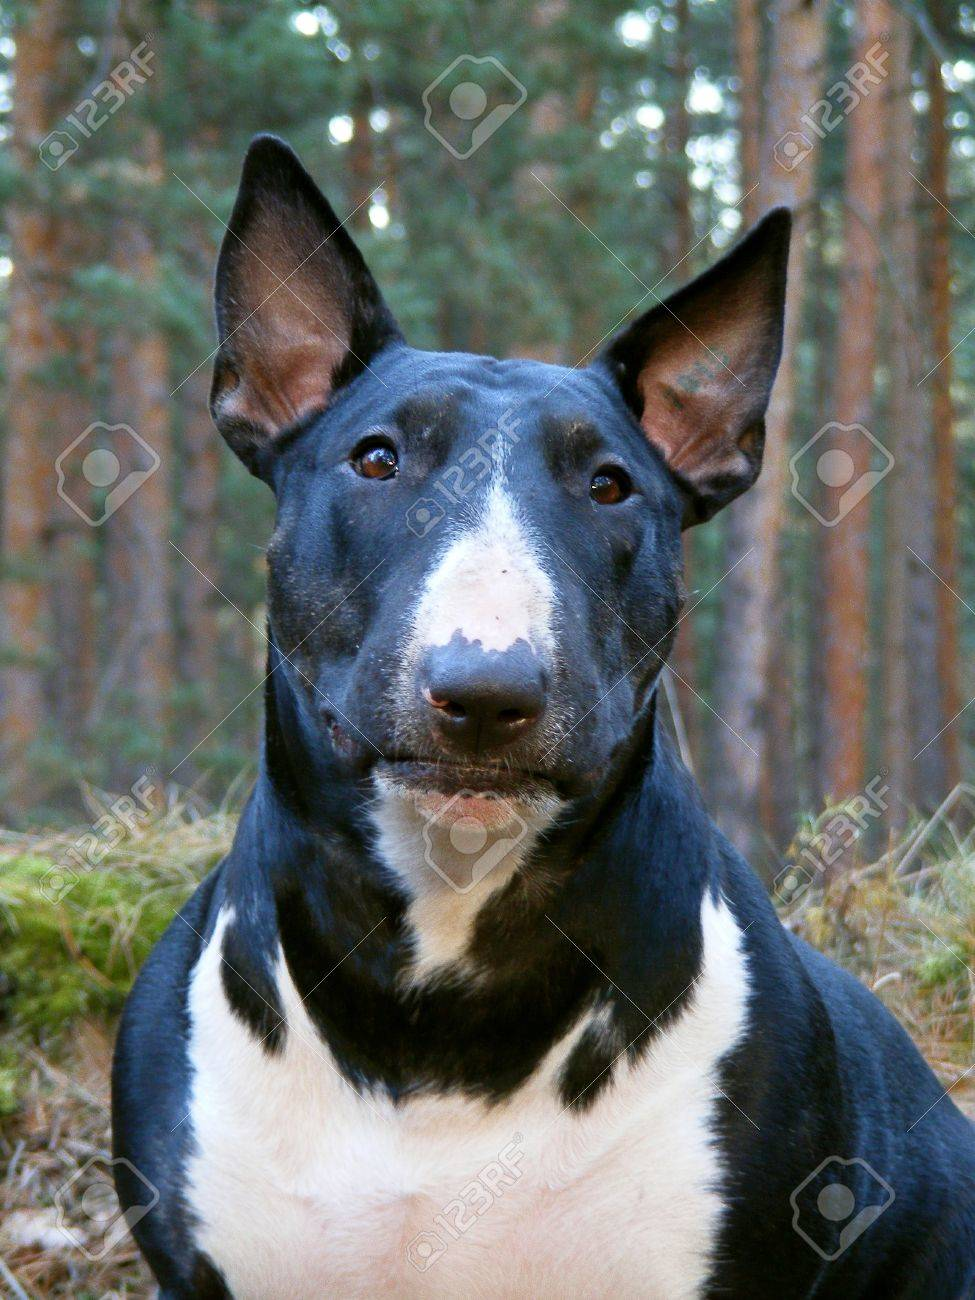 Black and white English bull terrier portrait in the forest